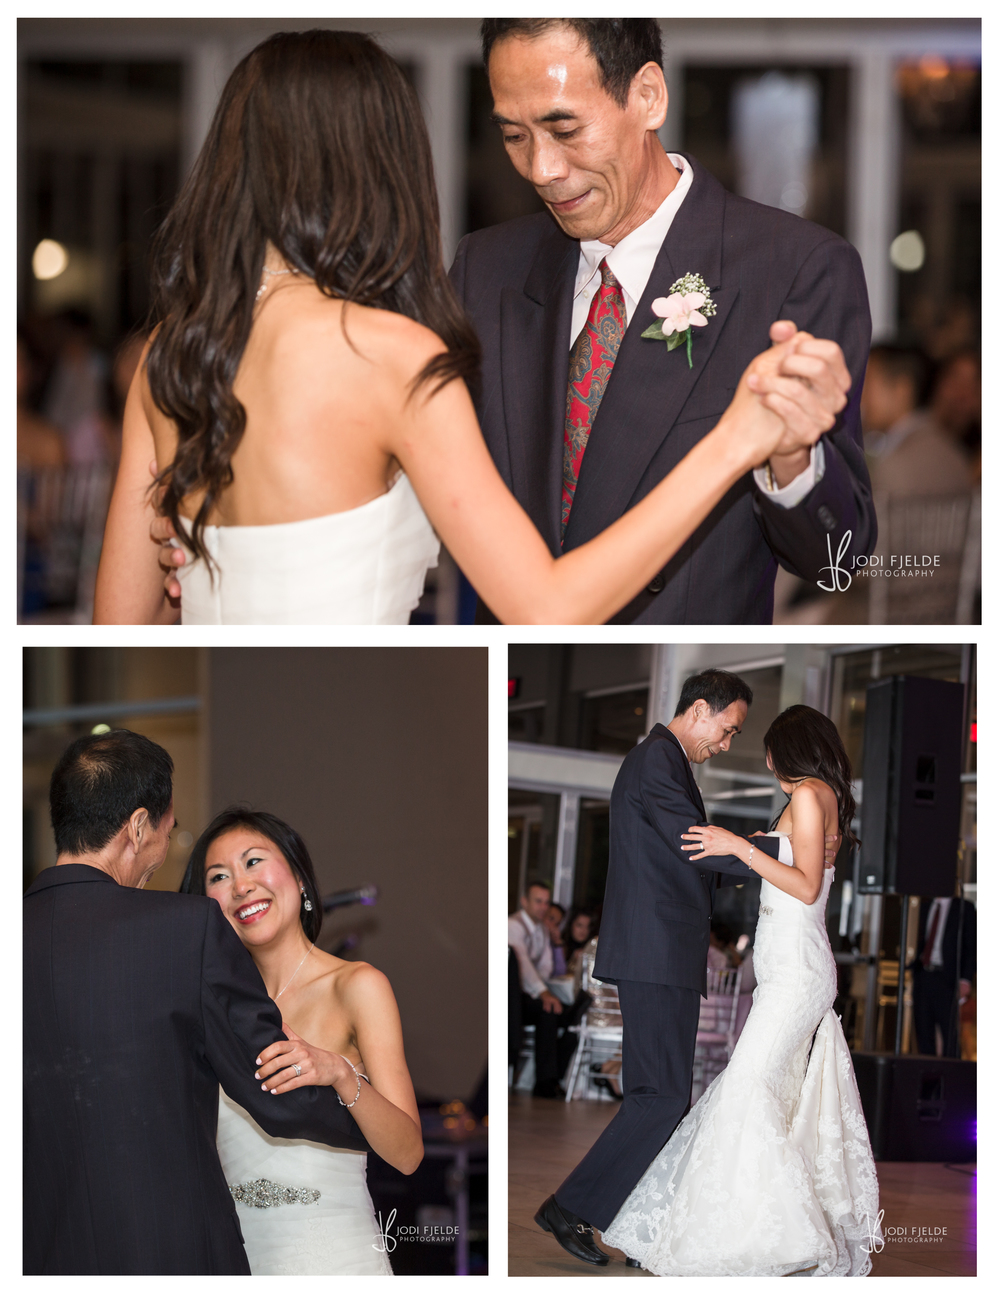 Lake_Pavilion_Wedding_West_Palm_Beach_Jodi_Fjelde_Photography_Betty_Alex_Sociaety_Of_Four _Arts_24.jpg